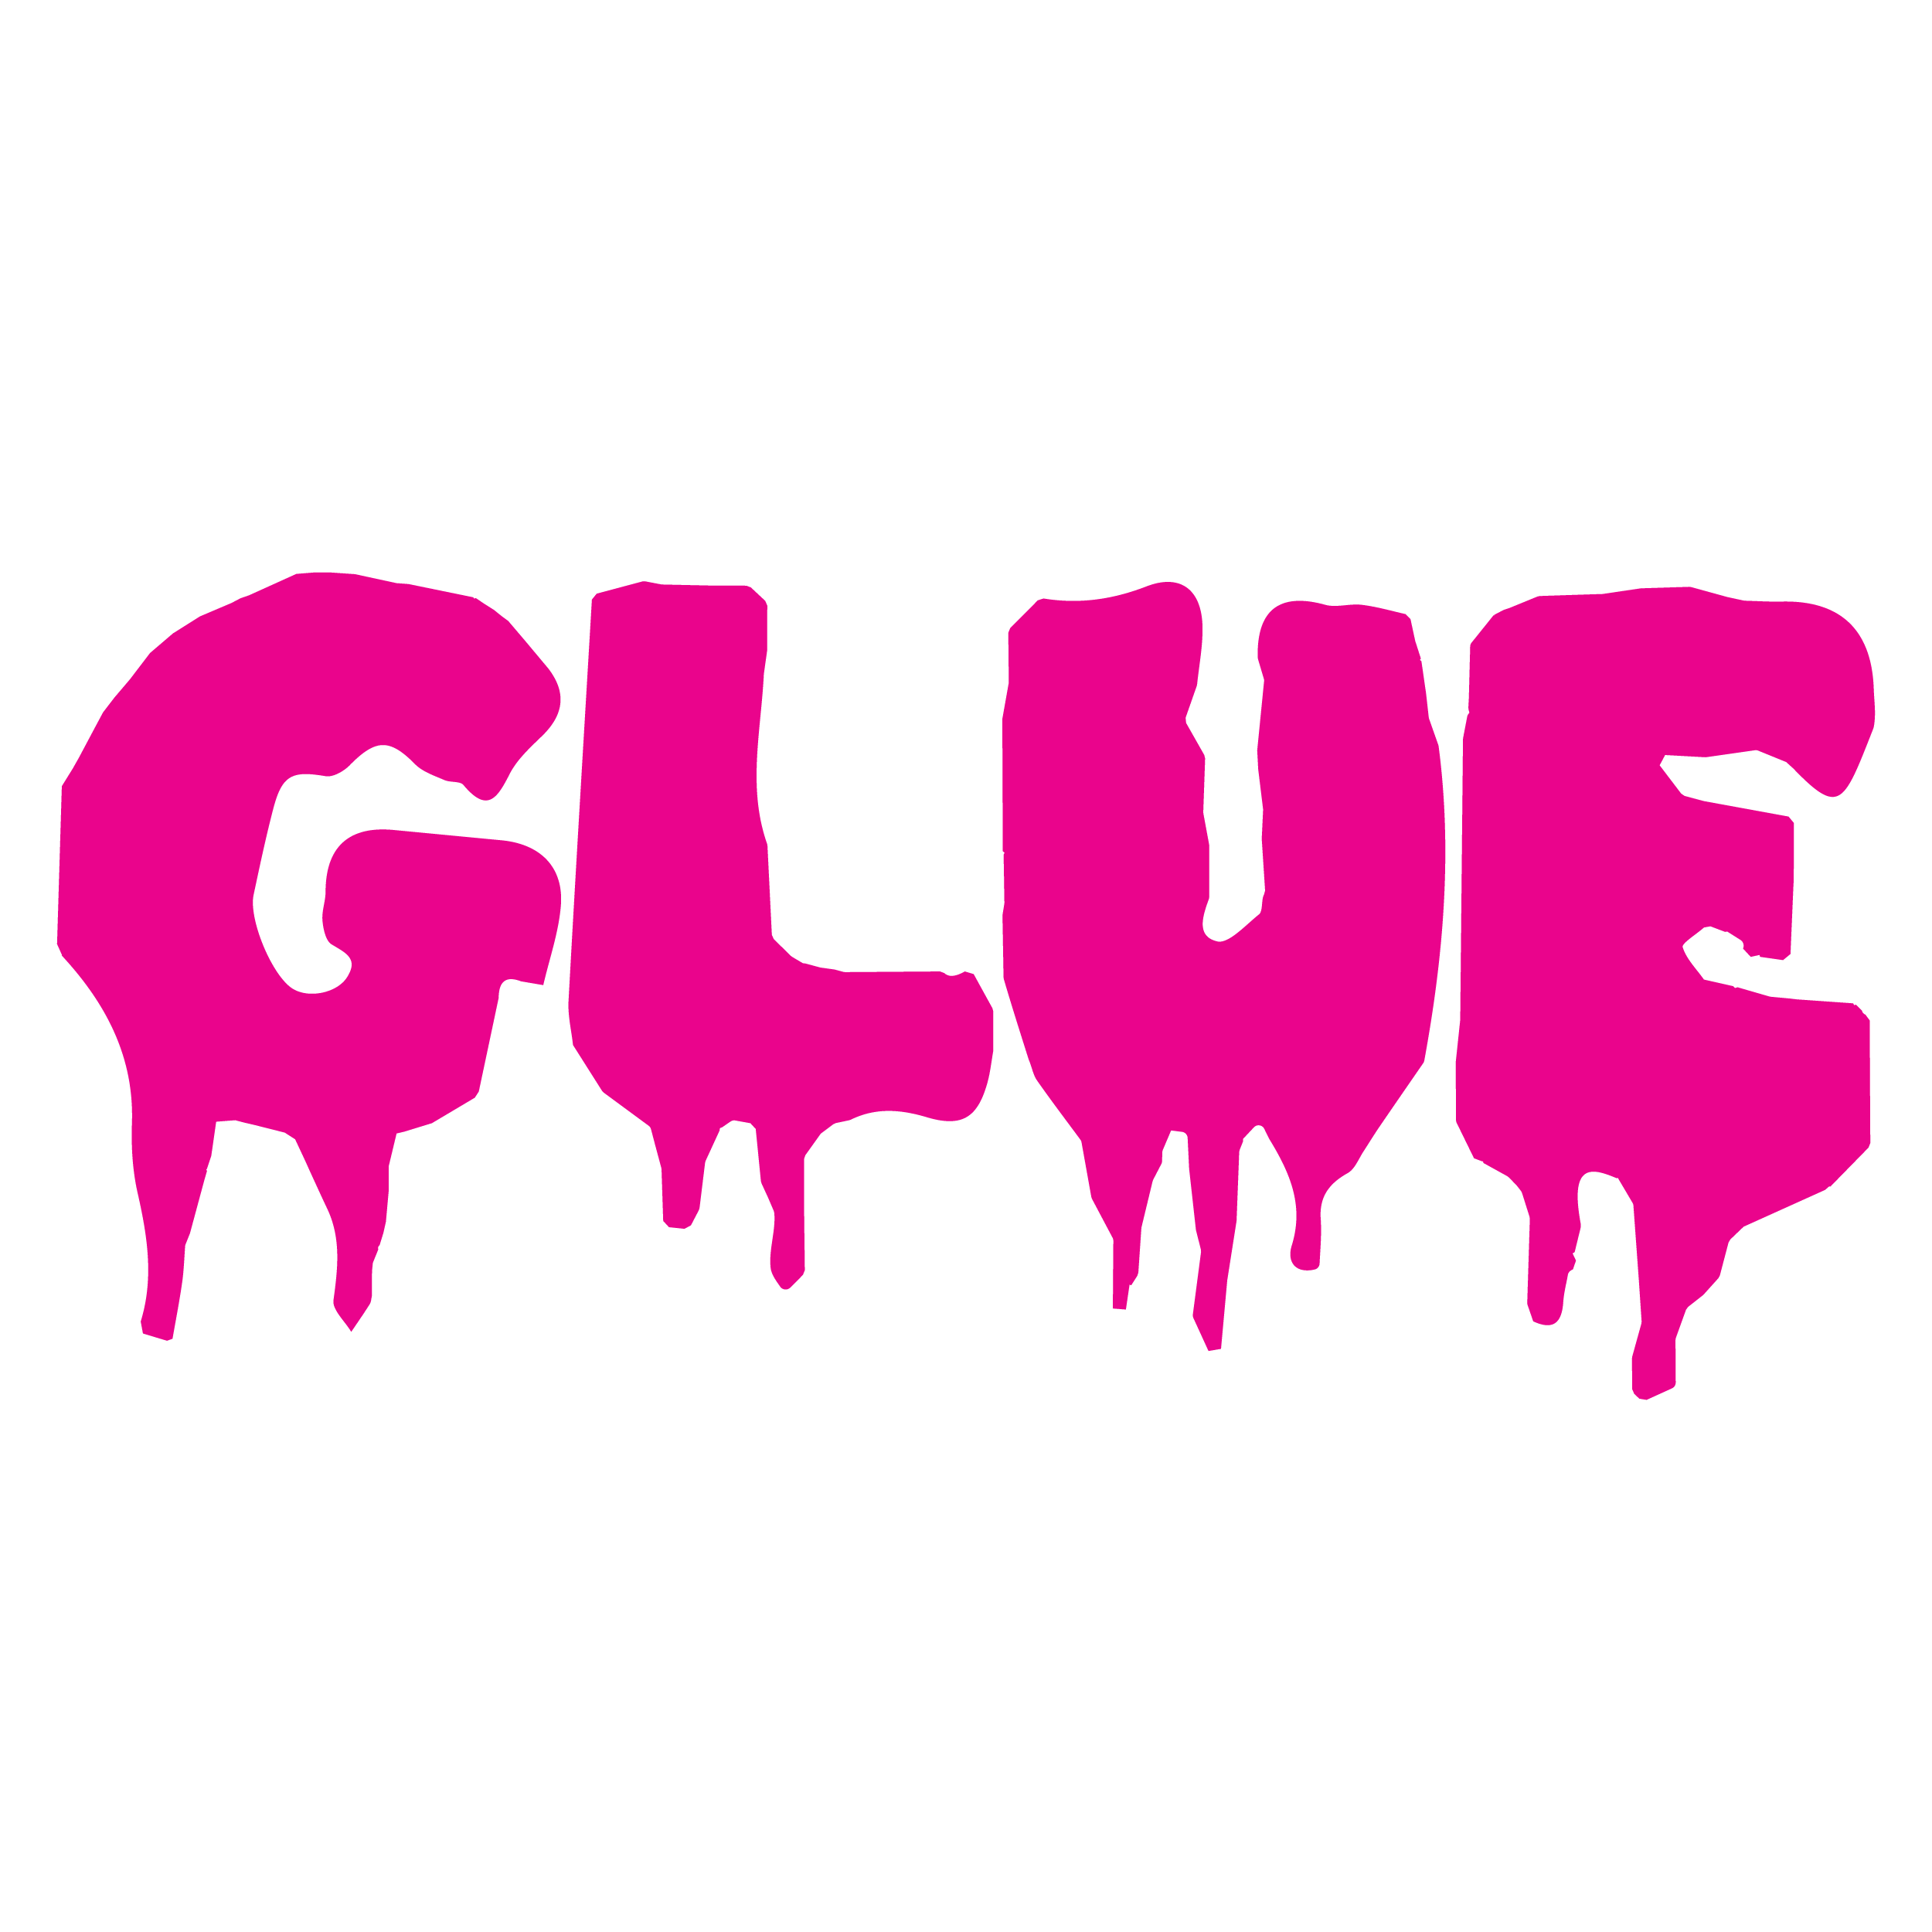 GLUE (G)uided (L)earning, (U)niting and (E)ducating - GLUE is a social arts programme based at The Tabernacle W11, providing free workshops for young people aged 5-16. Utilizing the arts to encourage young people to #StickTogether, GLUE aims to inspire and connect emerging creatives.